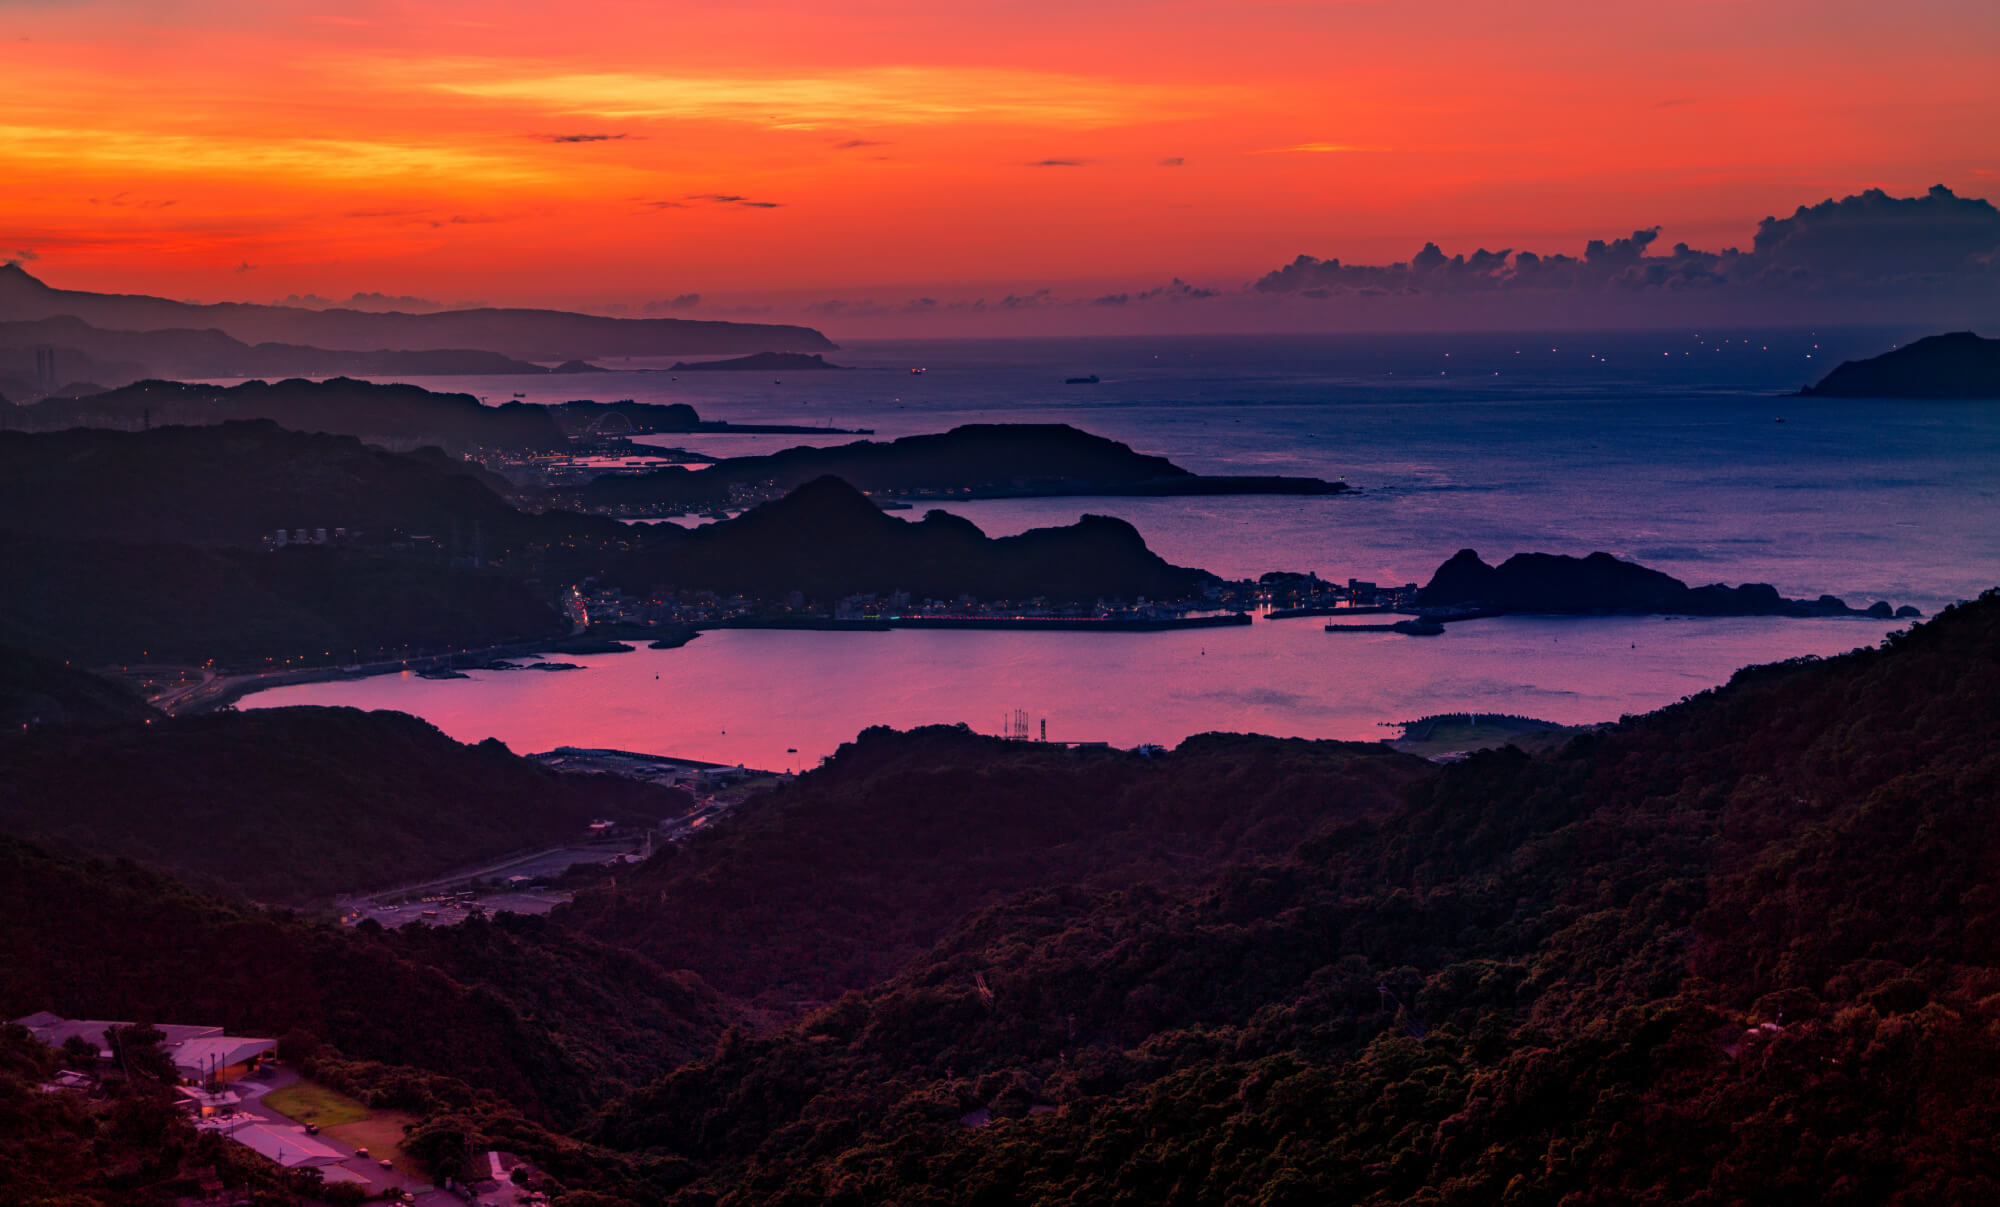 Jiufen's beautiful coastline view=